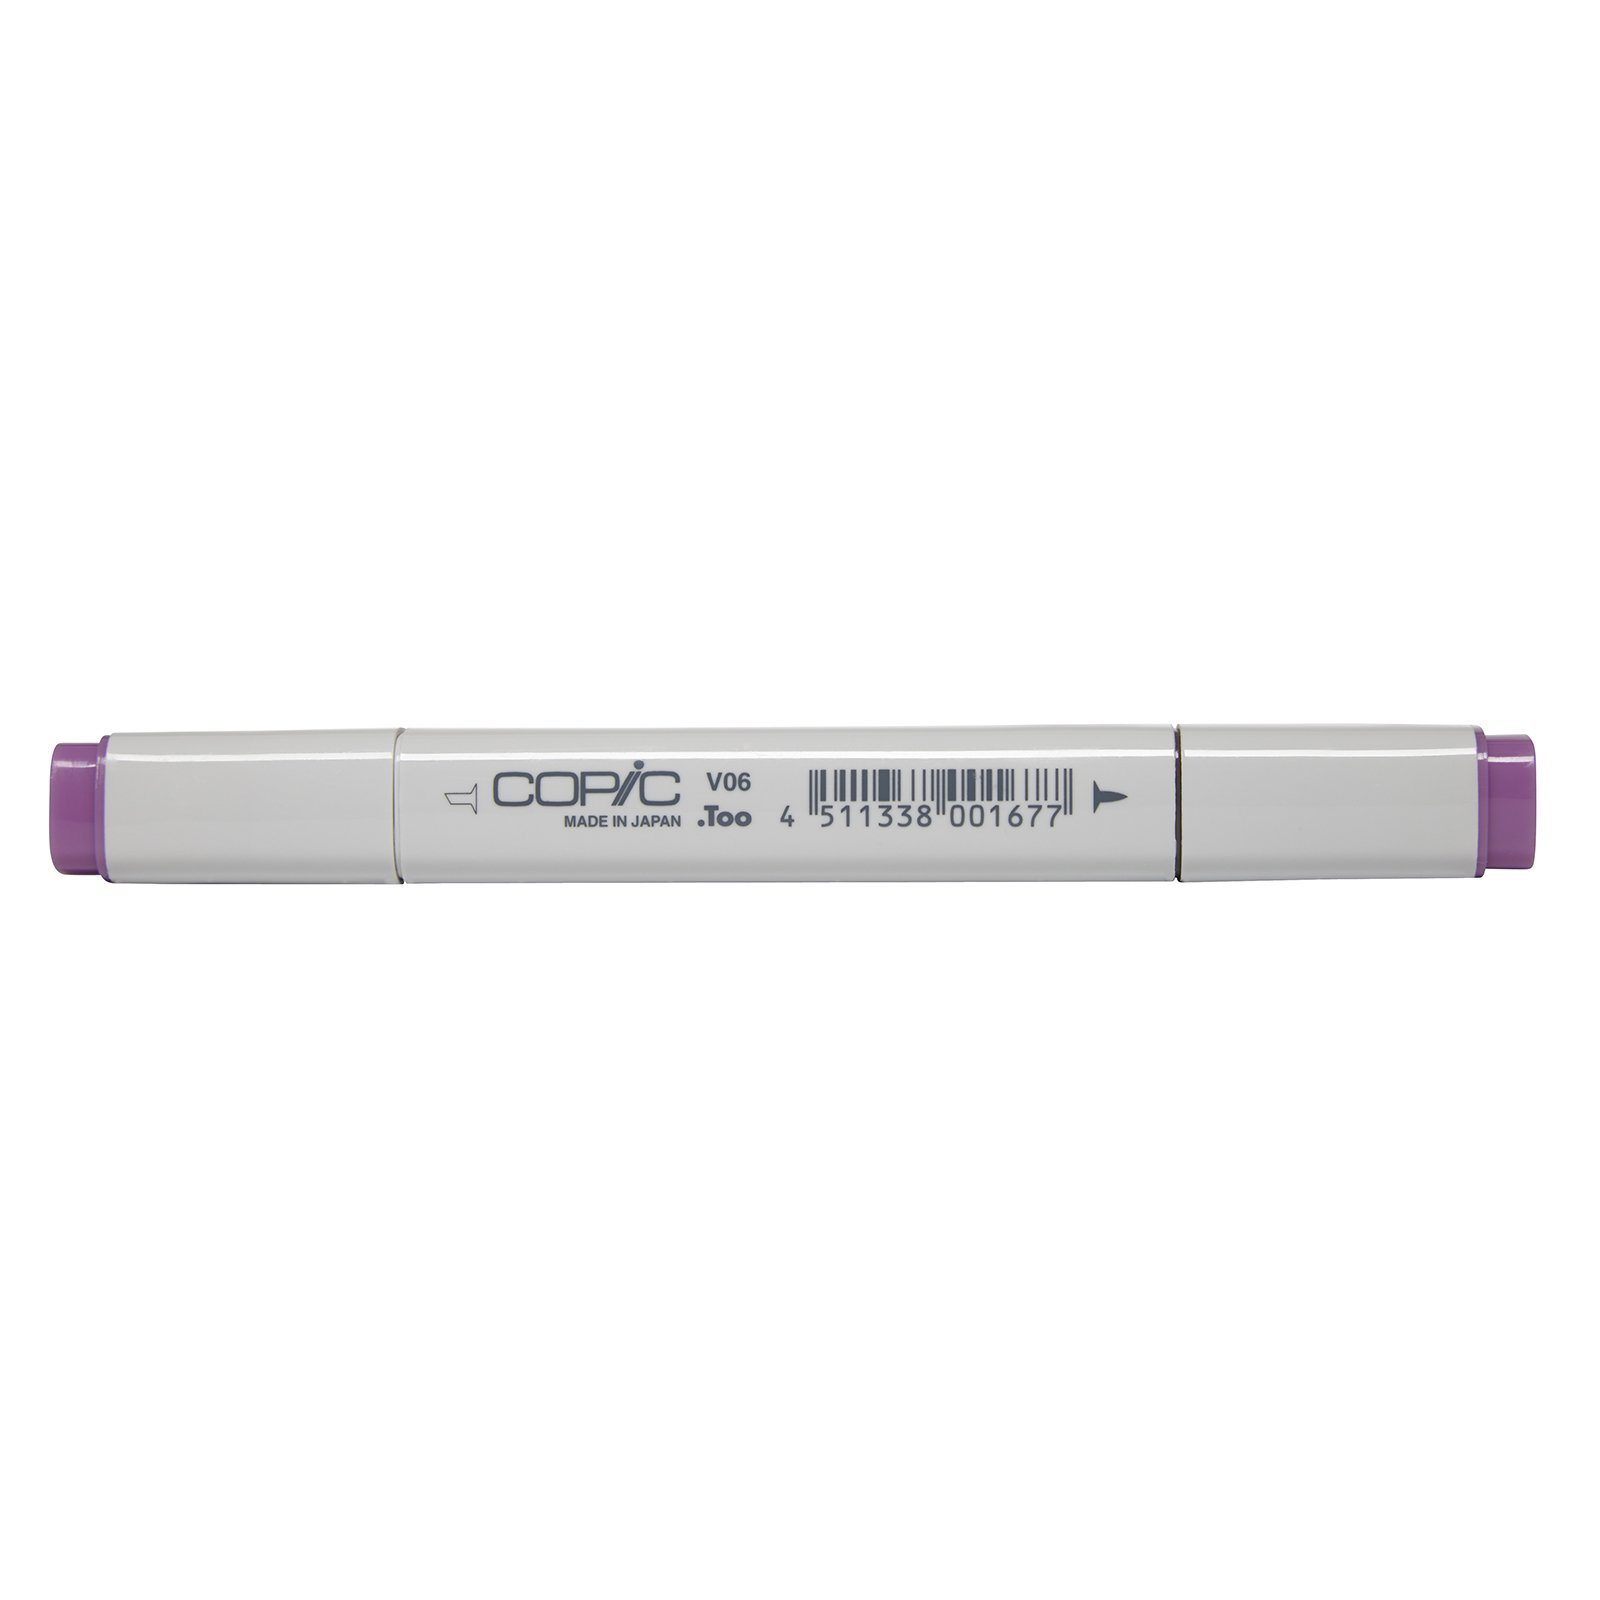 Copic Marker with Replaceable Nib, V06-Copic, Lavender